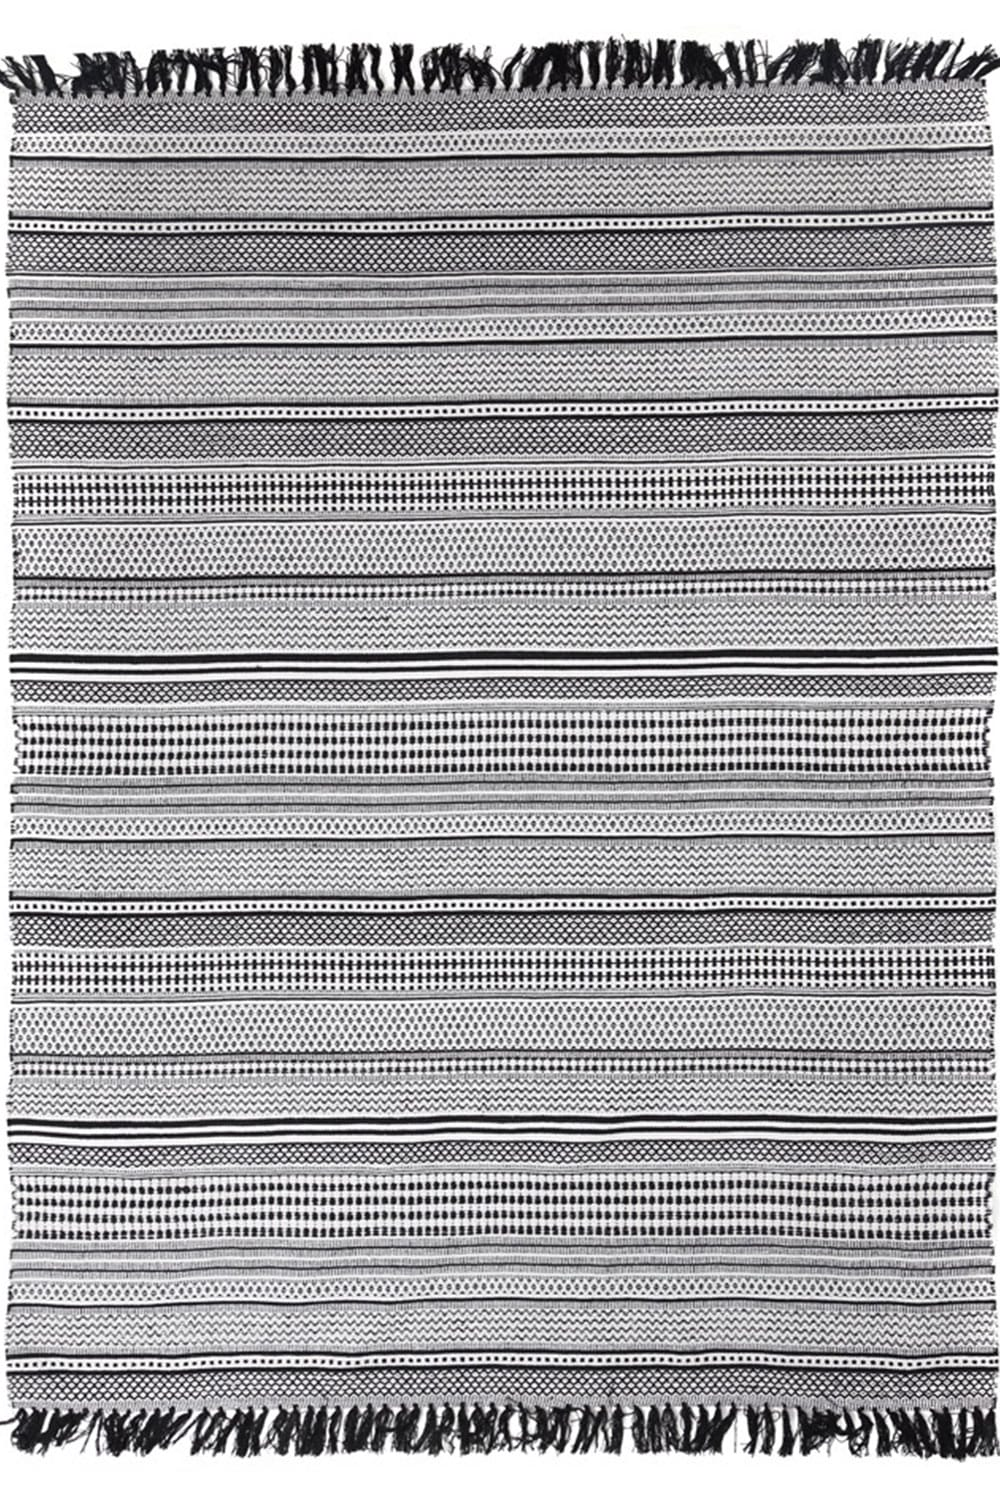 Χαλί Urban Cotton Kilim Samaira Black-White Royal carpet 140X200